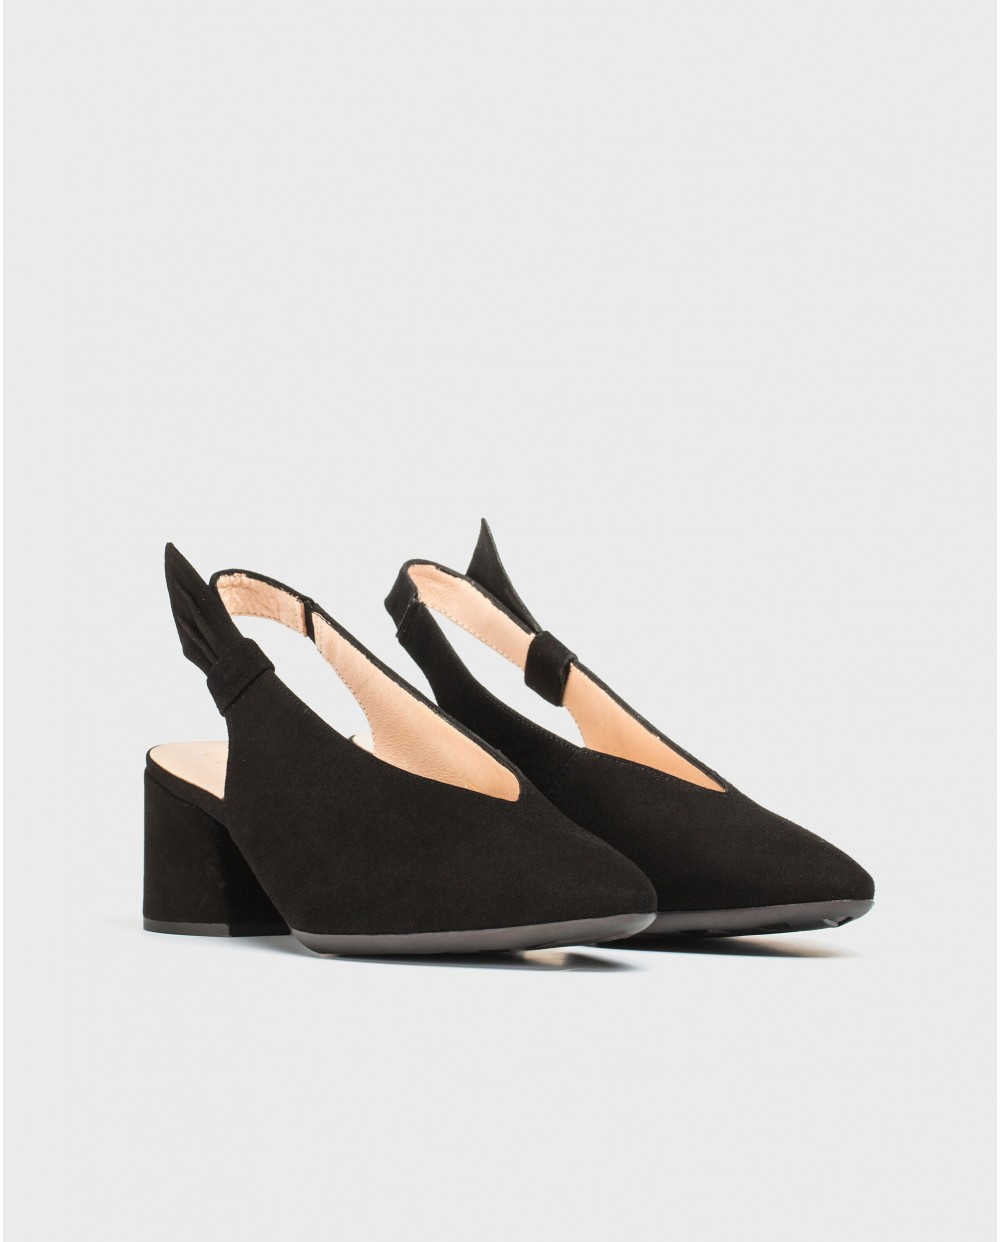 Wonders-Women-Leather shoe with bow